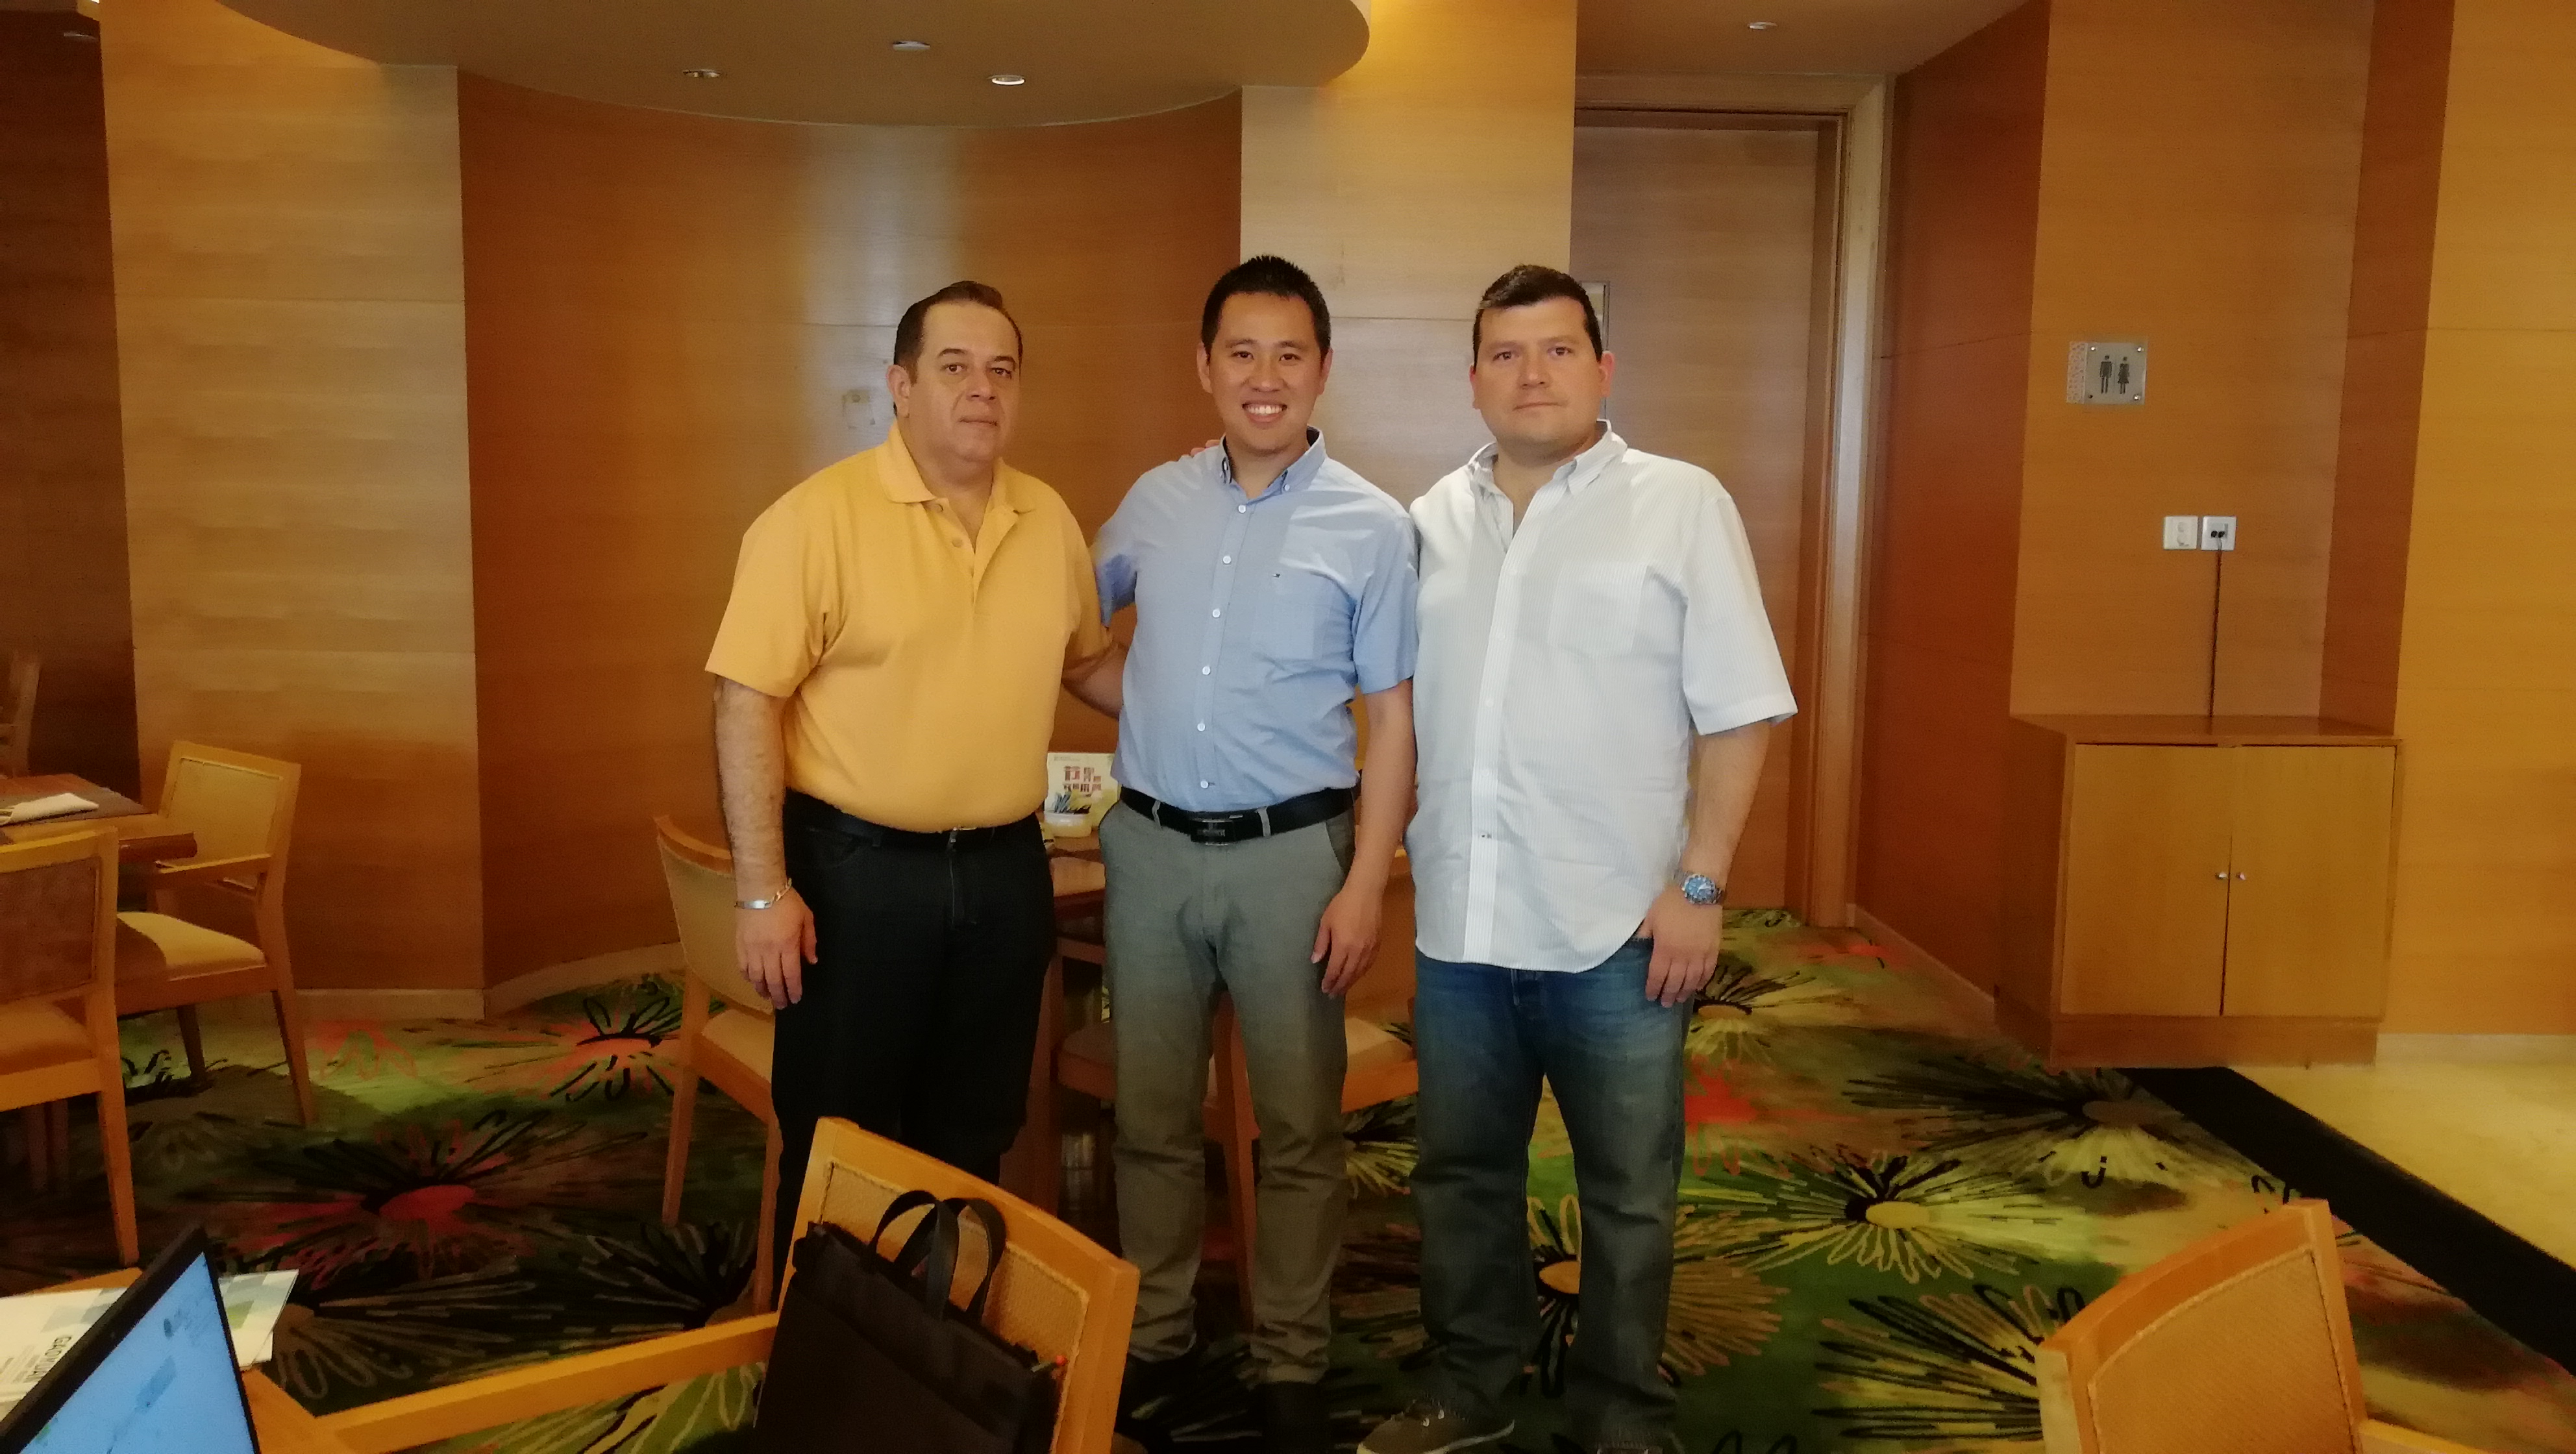 meeting with mexico clients